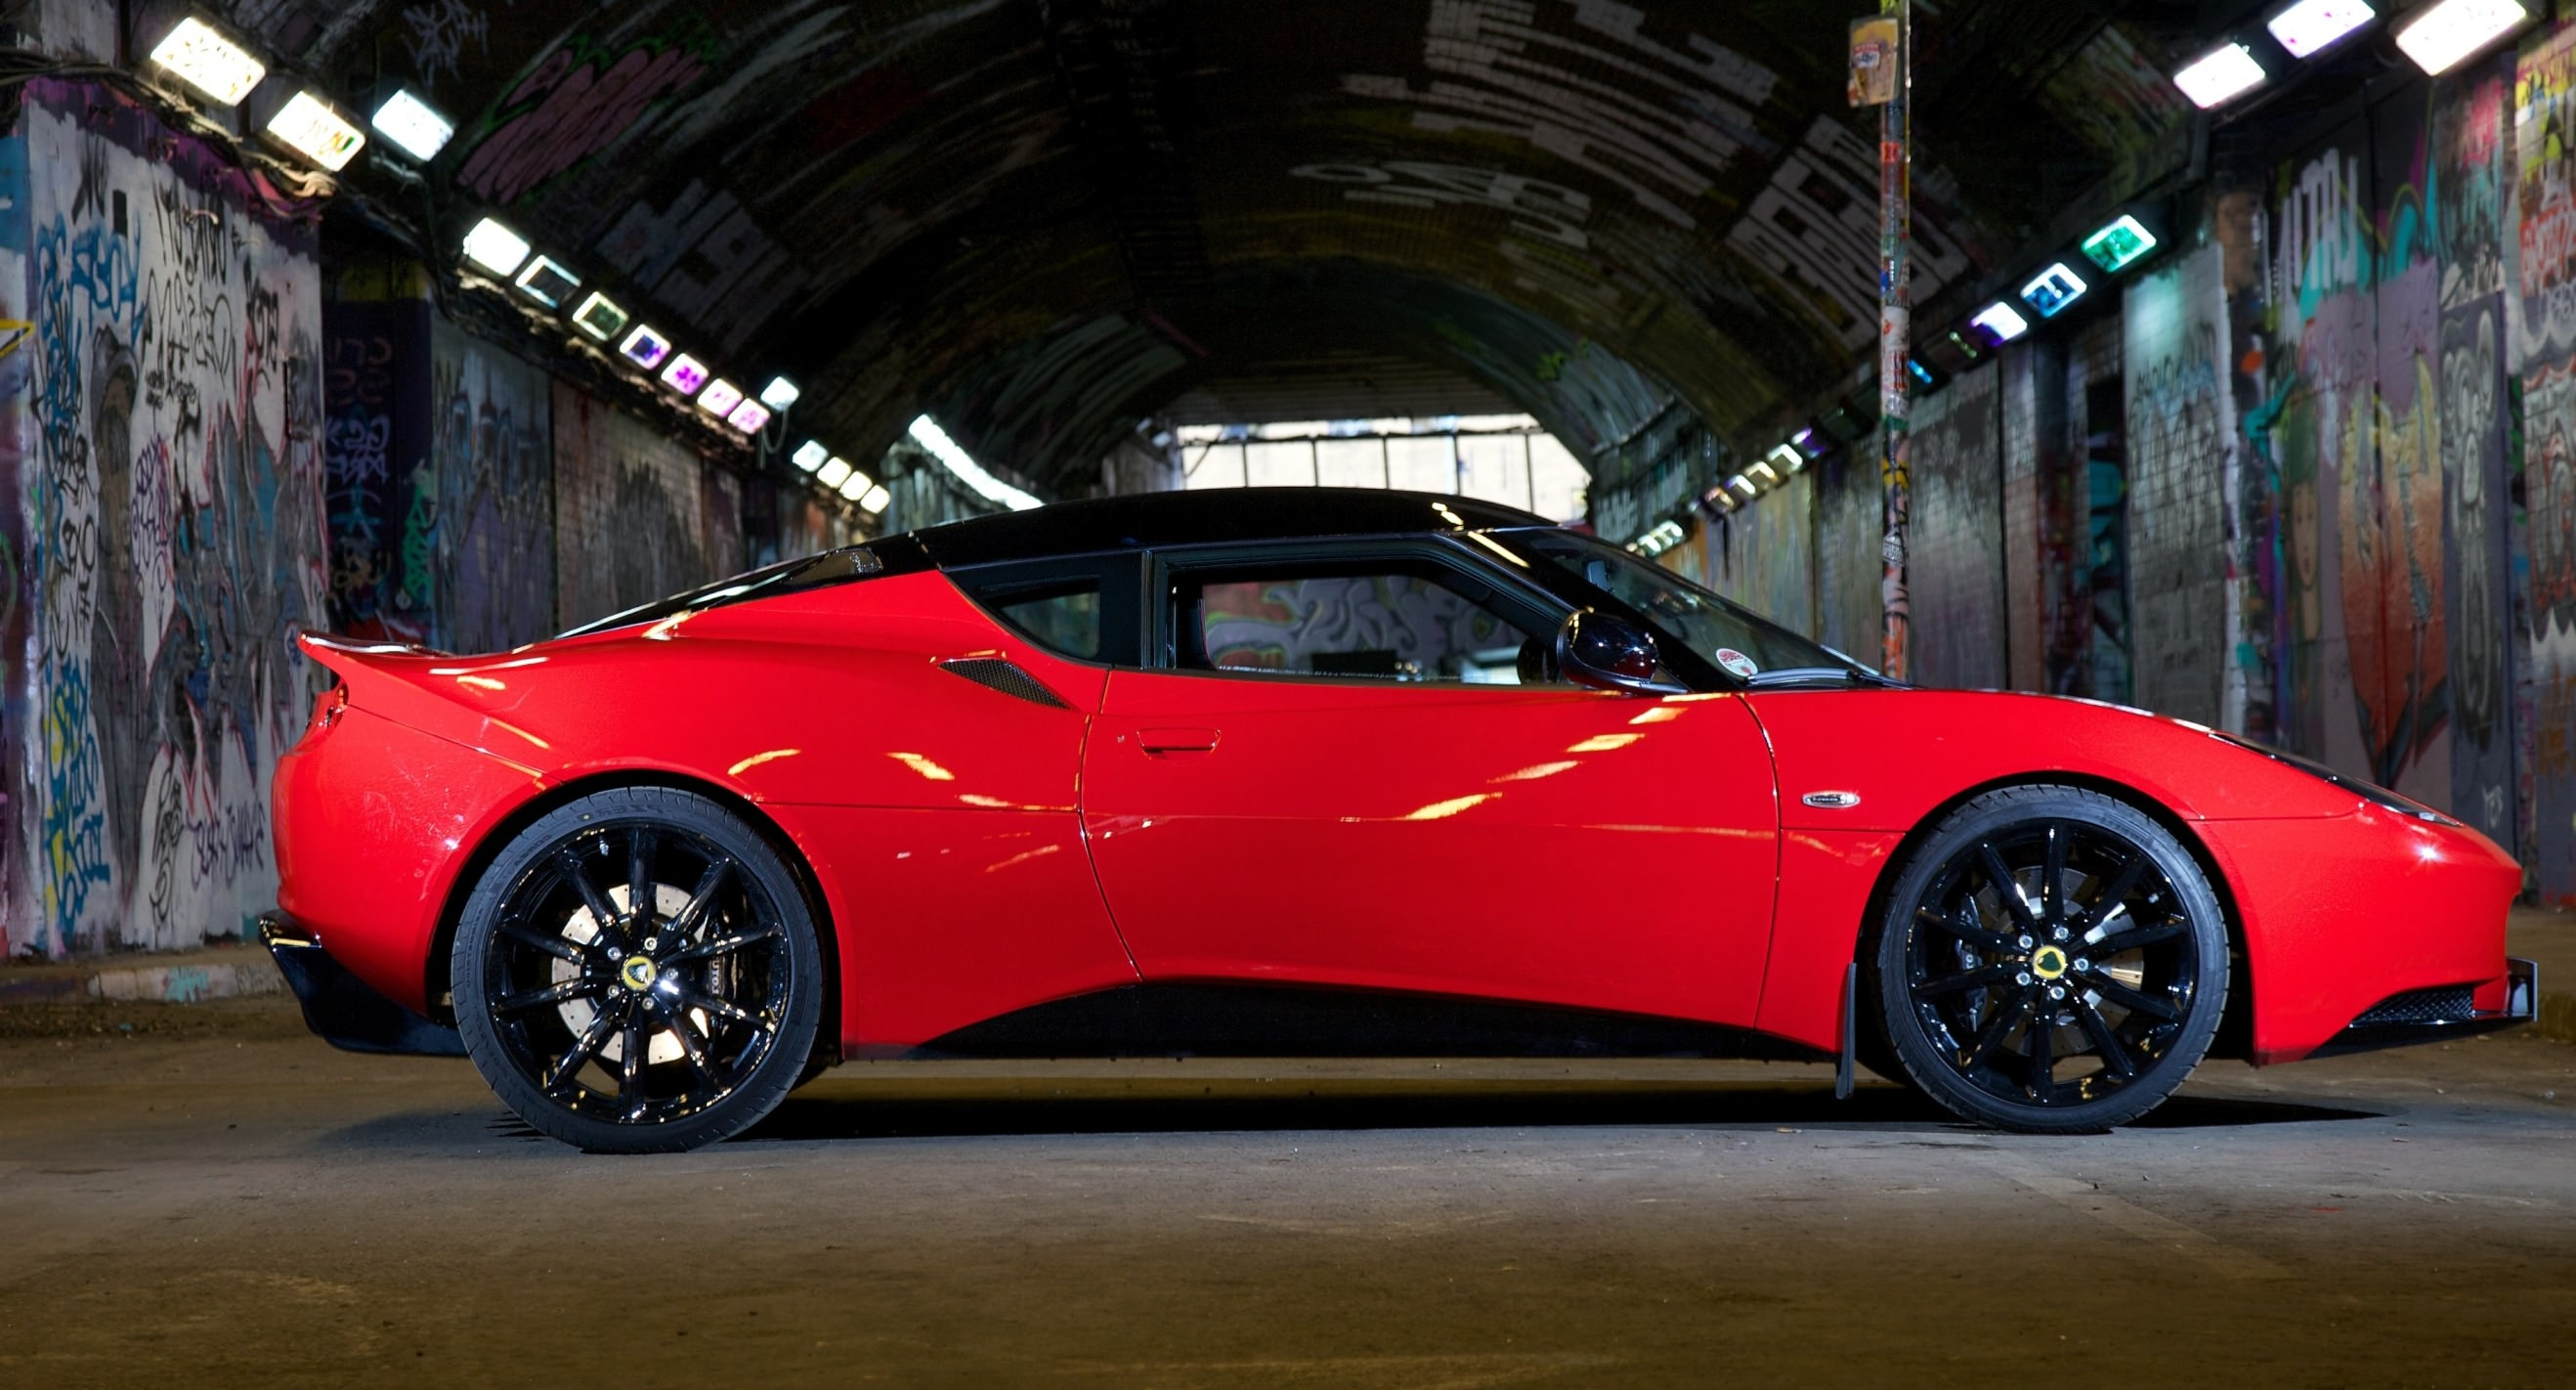 Evora 400, the comeback car of Lotus now has its price released for the U.S.